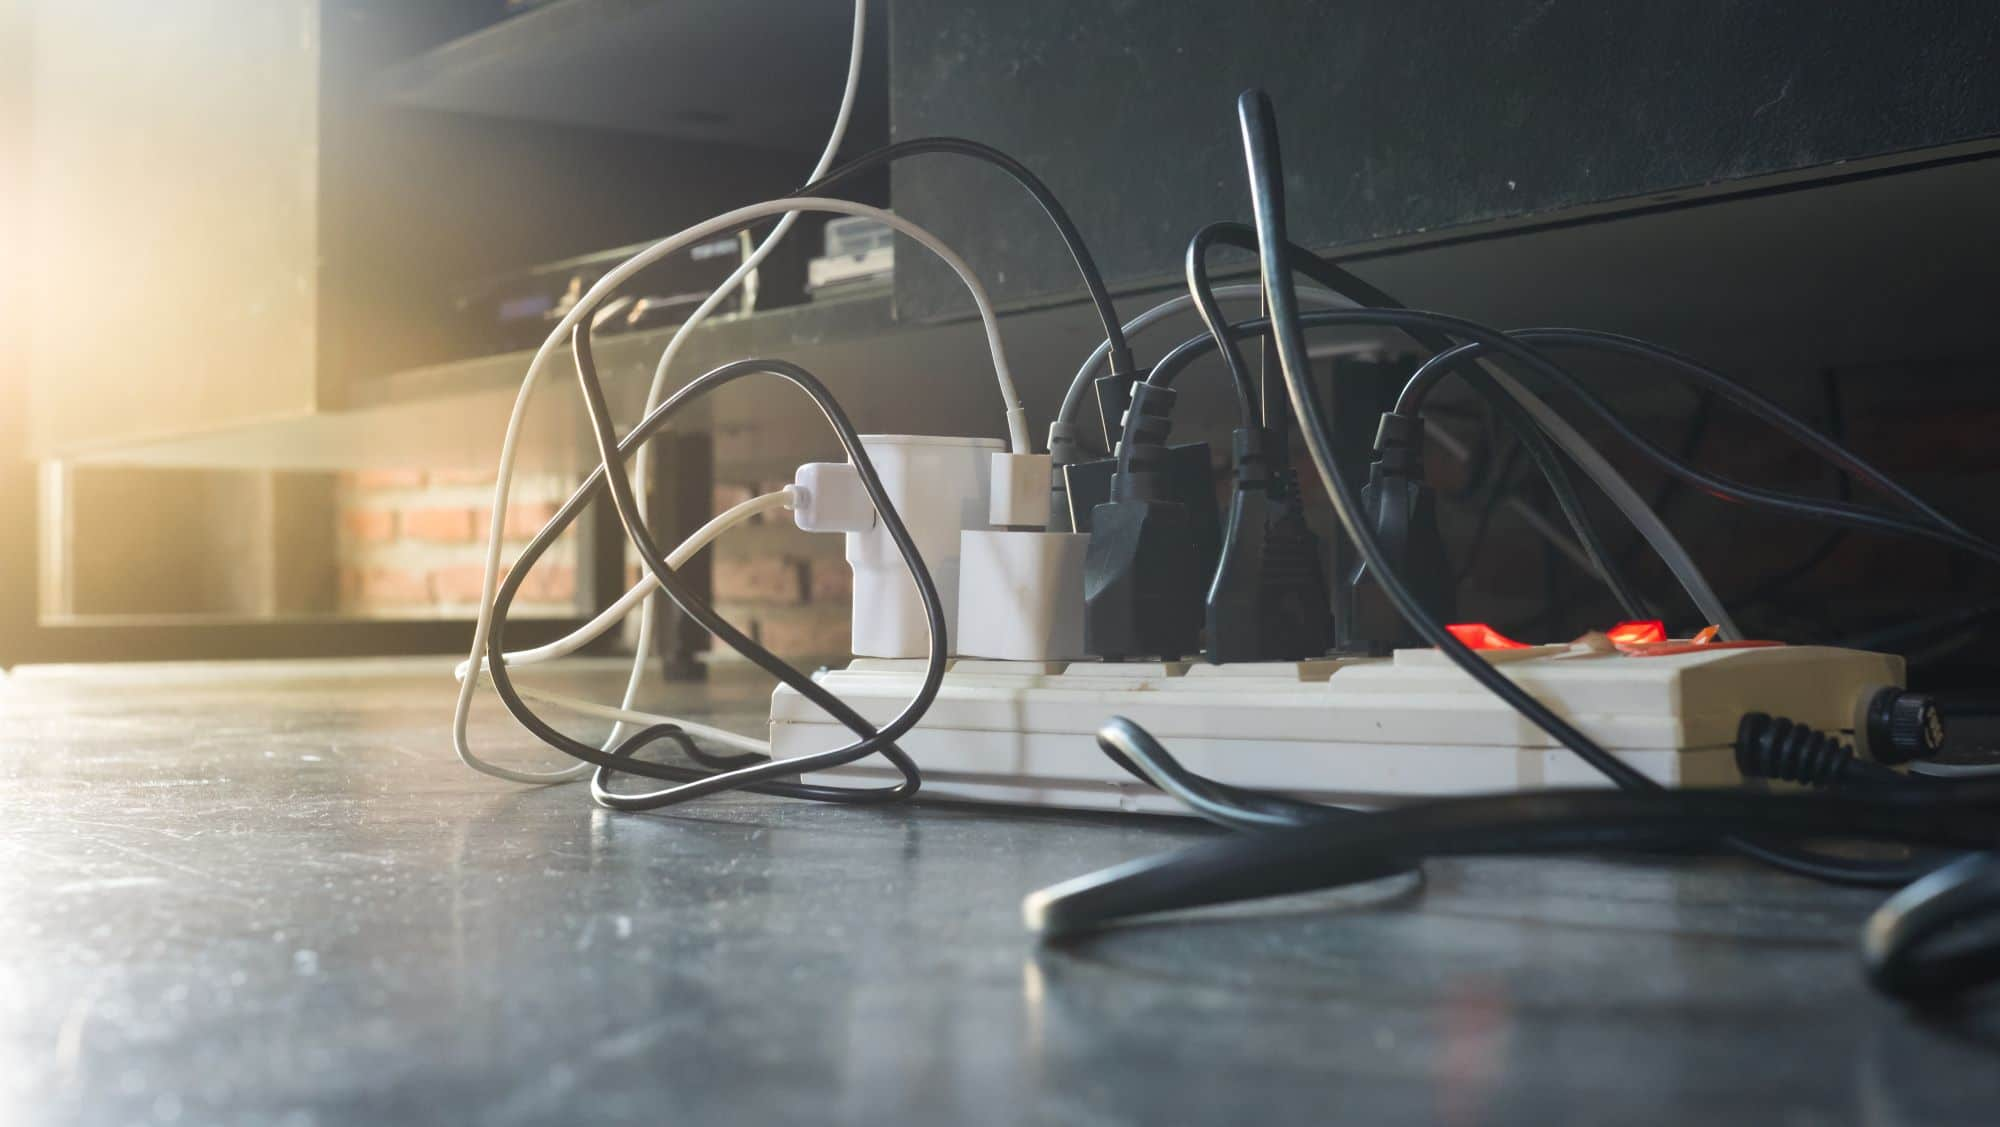 overloaded outlets